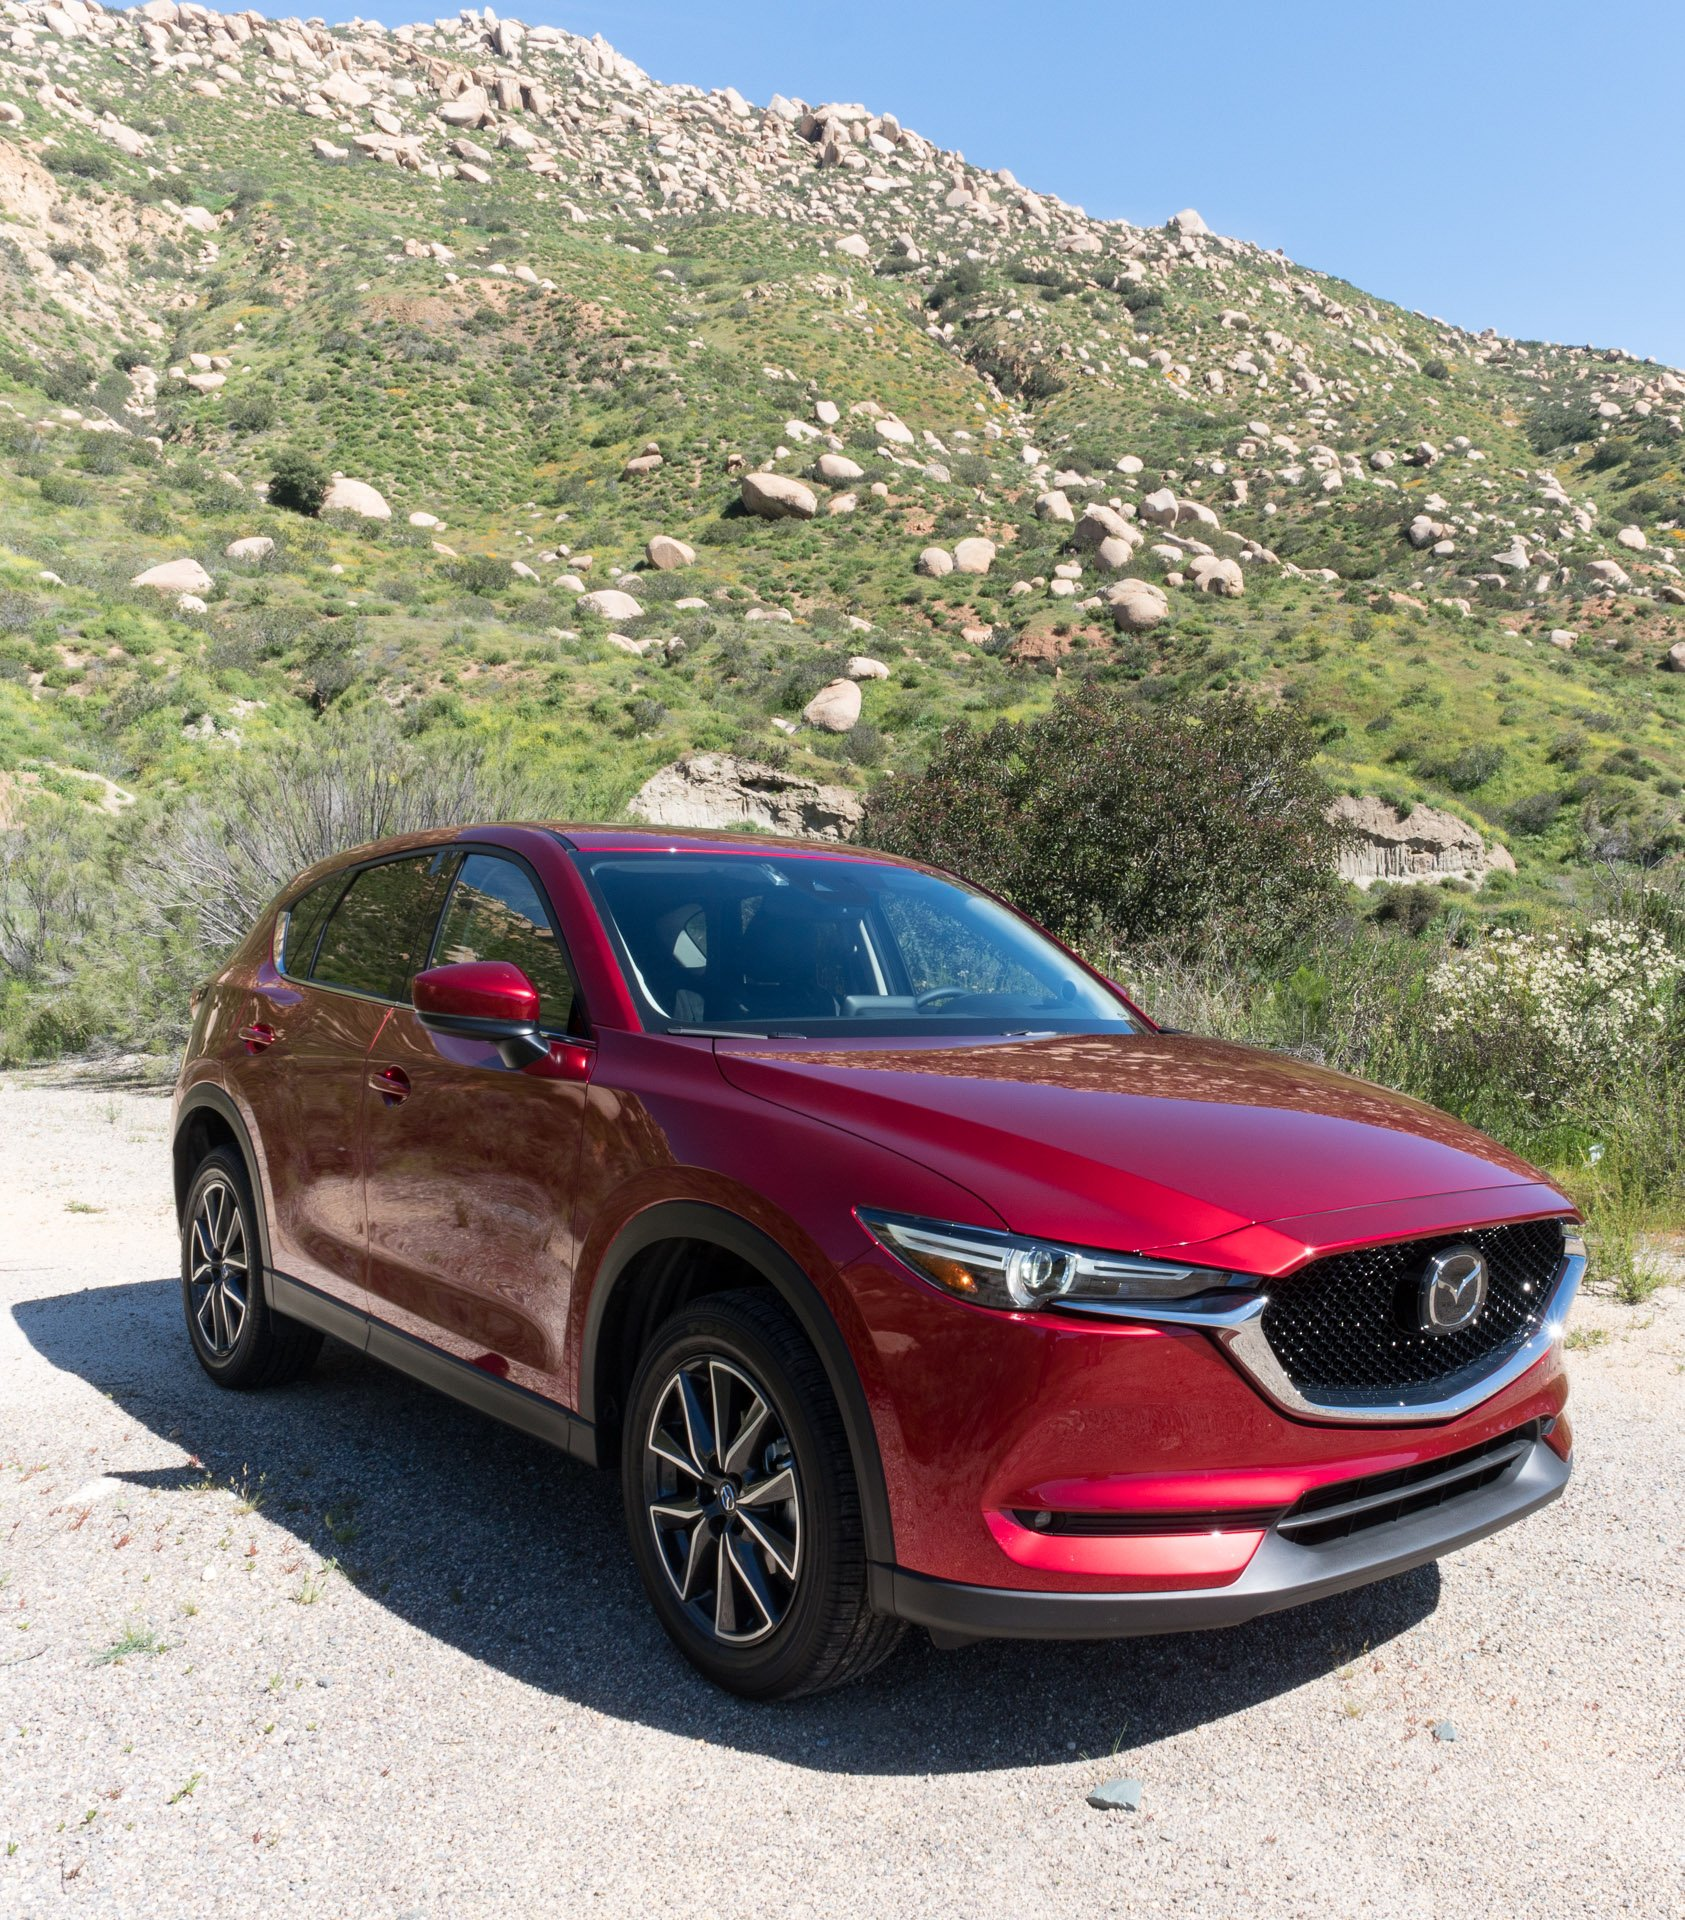 2017 mazda cx 5 grand touring first drive review 95 octane. Black Bedroom Furniture Sets. Home Design Ideas